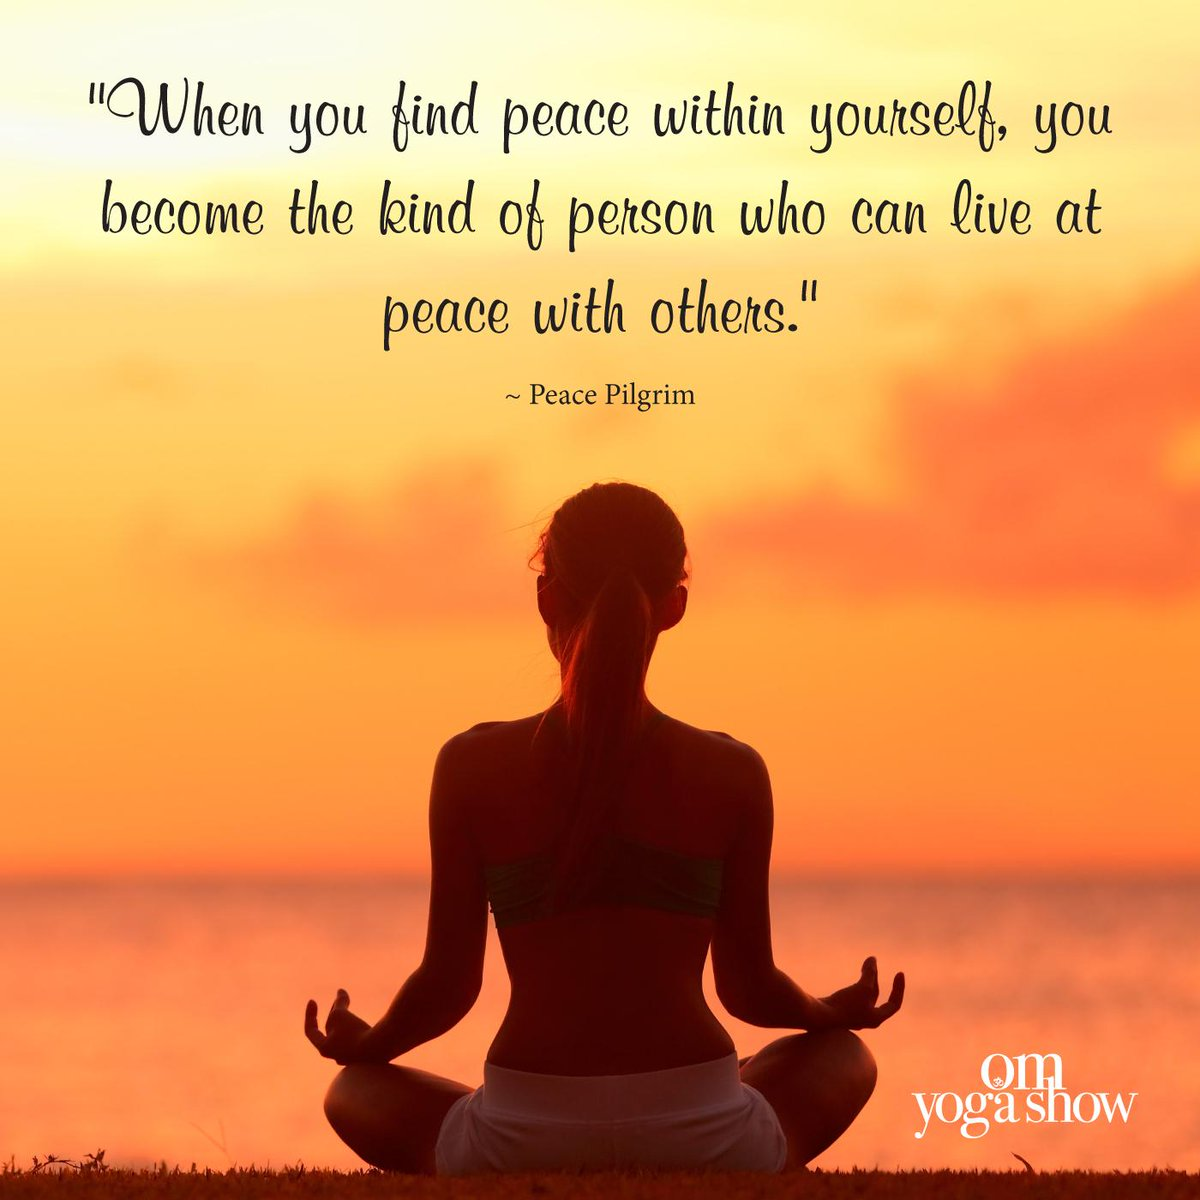 Om Yoga Show On Twitter When You Find Peace Within Yourself You